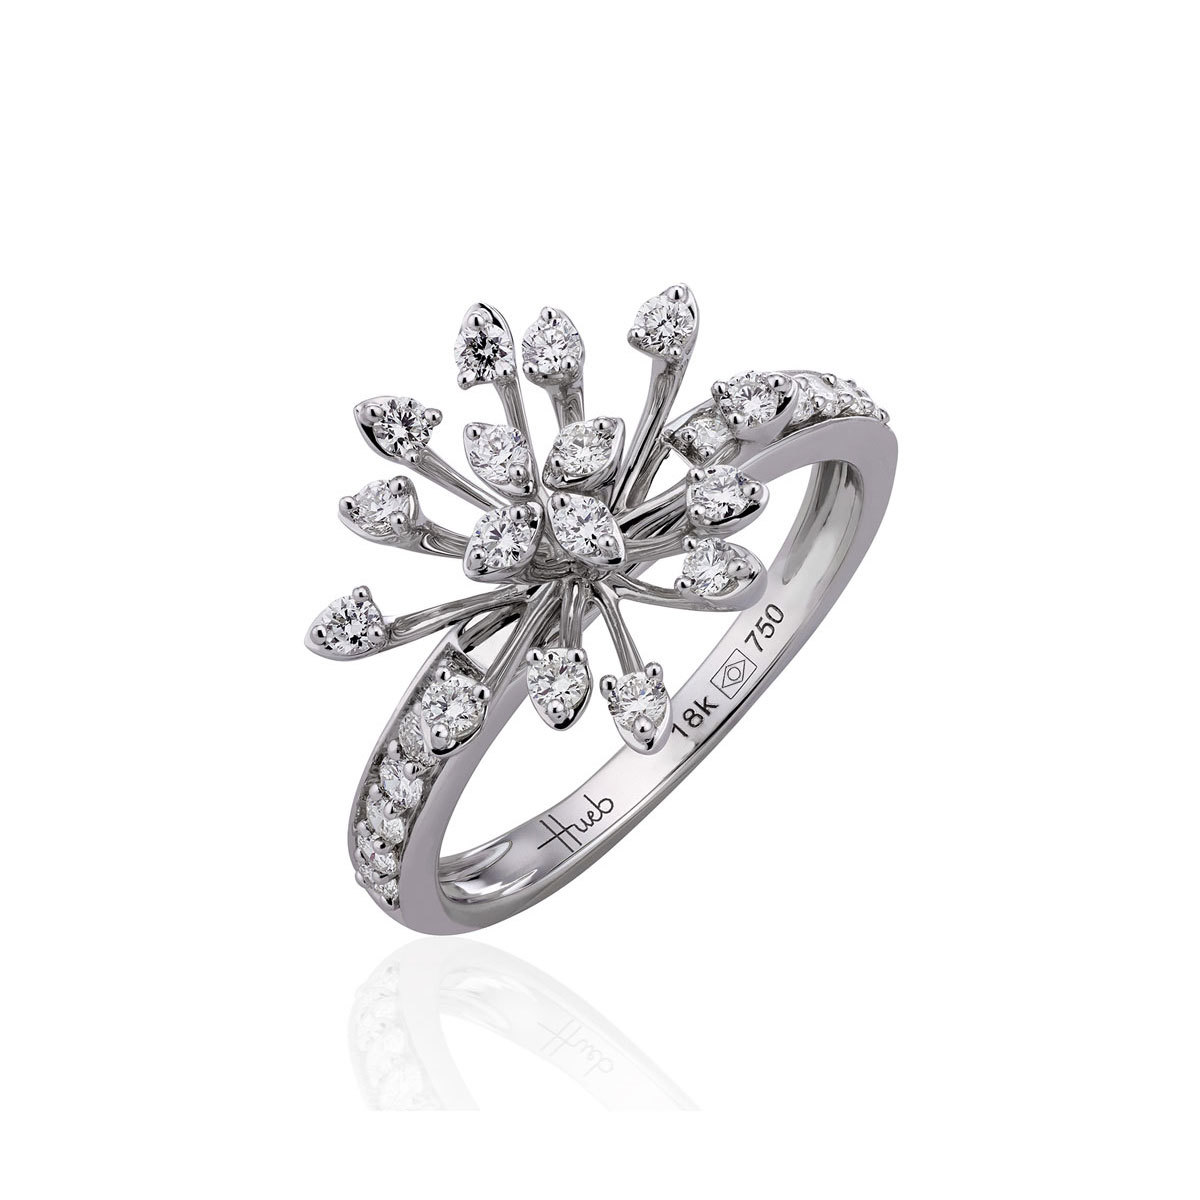 Hueb Luminus 18k White Gold Diamond Stemmed Ring Hueb ring from the Luminus Collection from Neiman Marcus photo